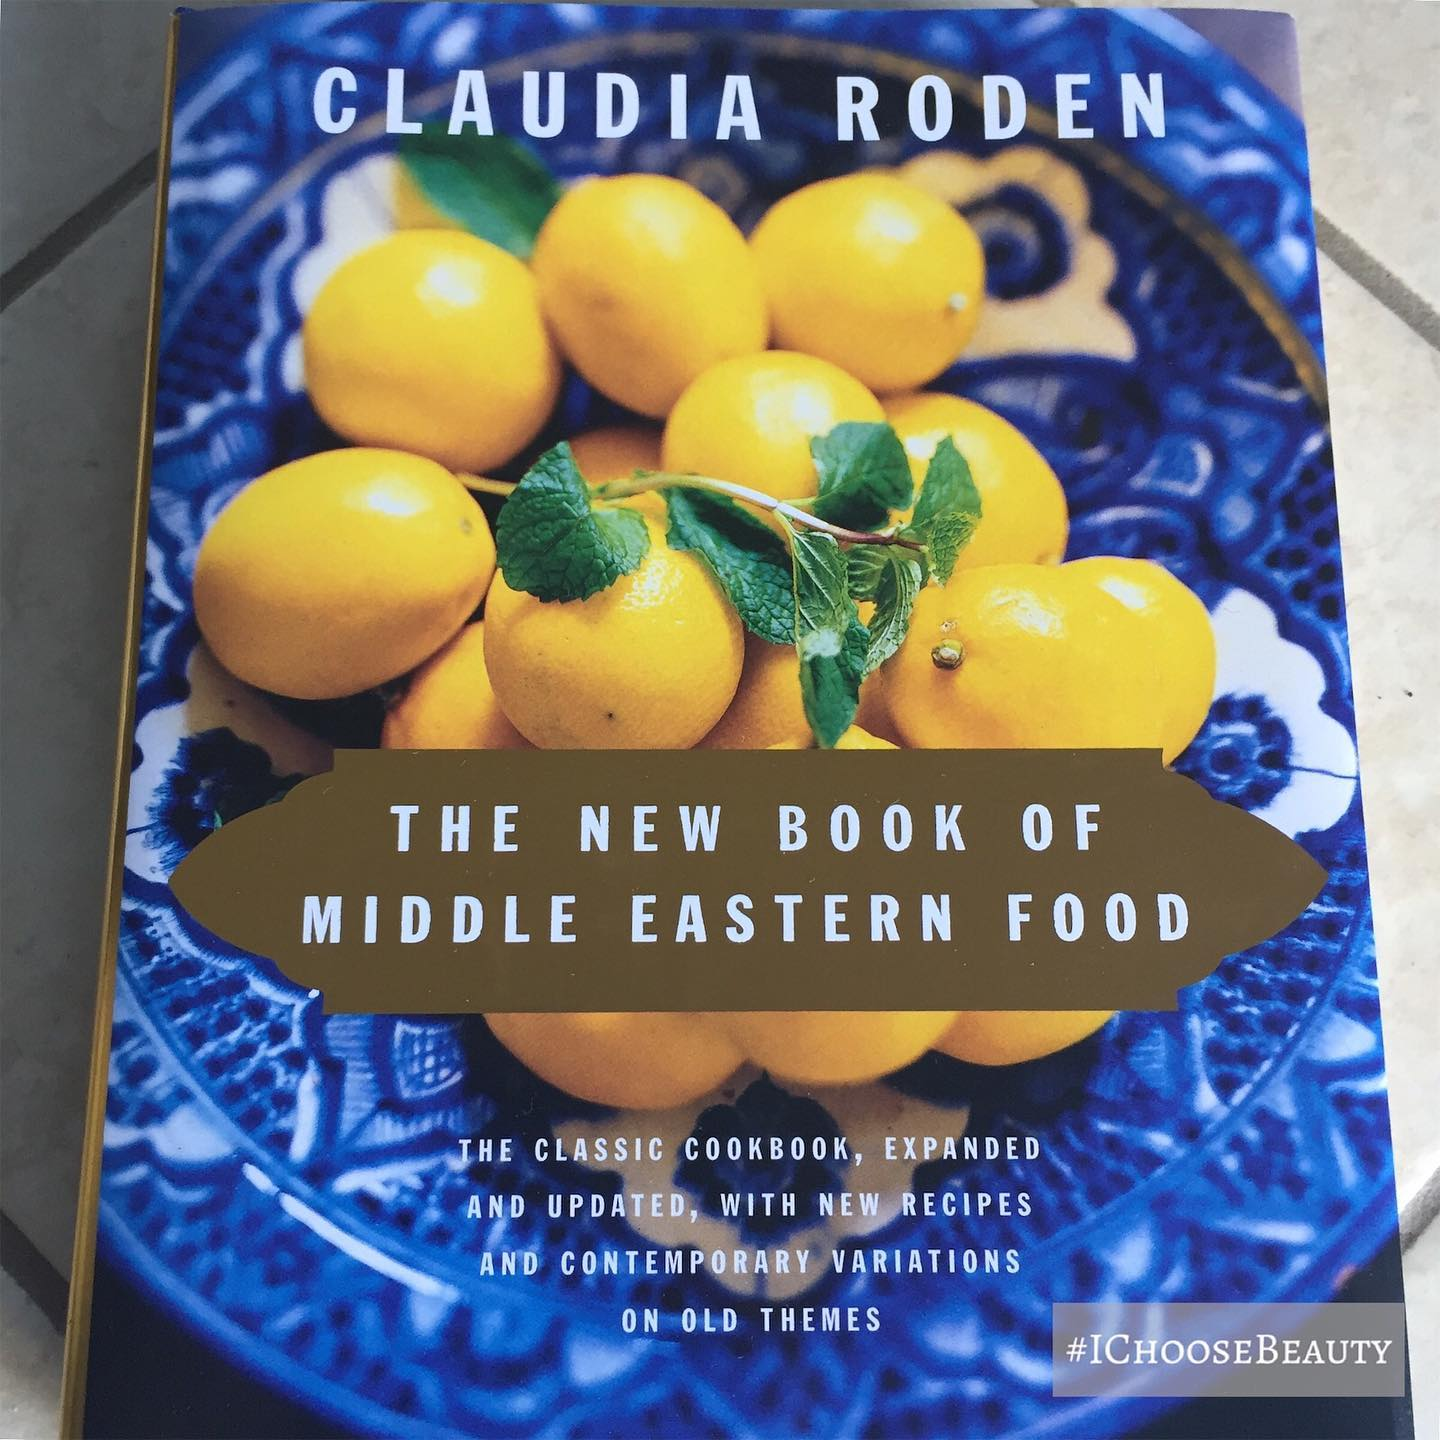 I've been longing for my mom's Egyptian recipes lately (I made the mistake of leaving them in storage when we moved to Maui). This cookbook's author was born and raised in Egypt, and has similar authentic recipes as the ones I grew up eating. Can't wait to dig in! ️ #ichoosebeauty Day 2398